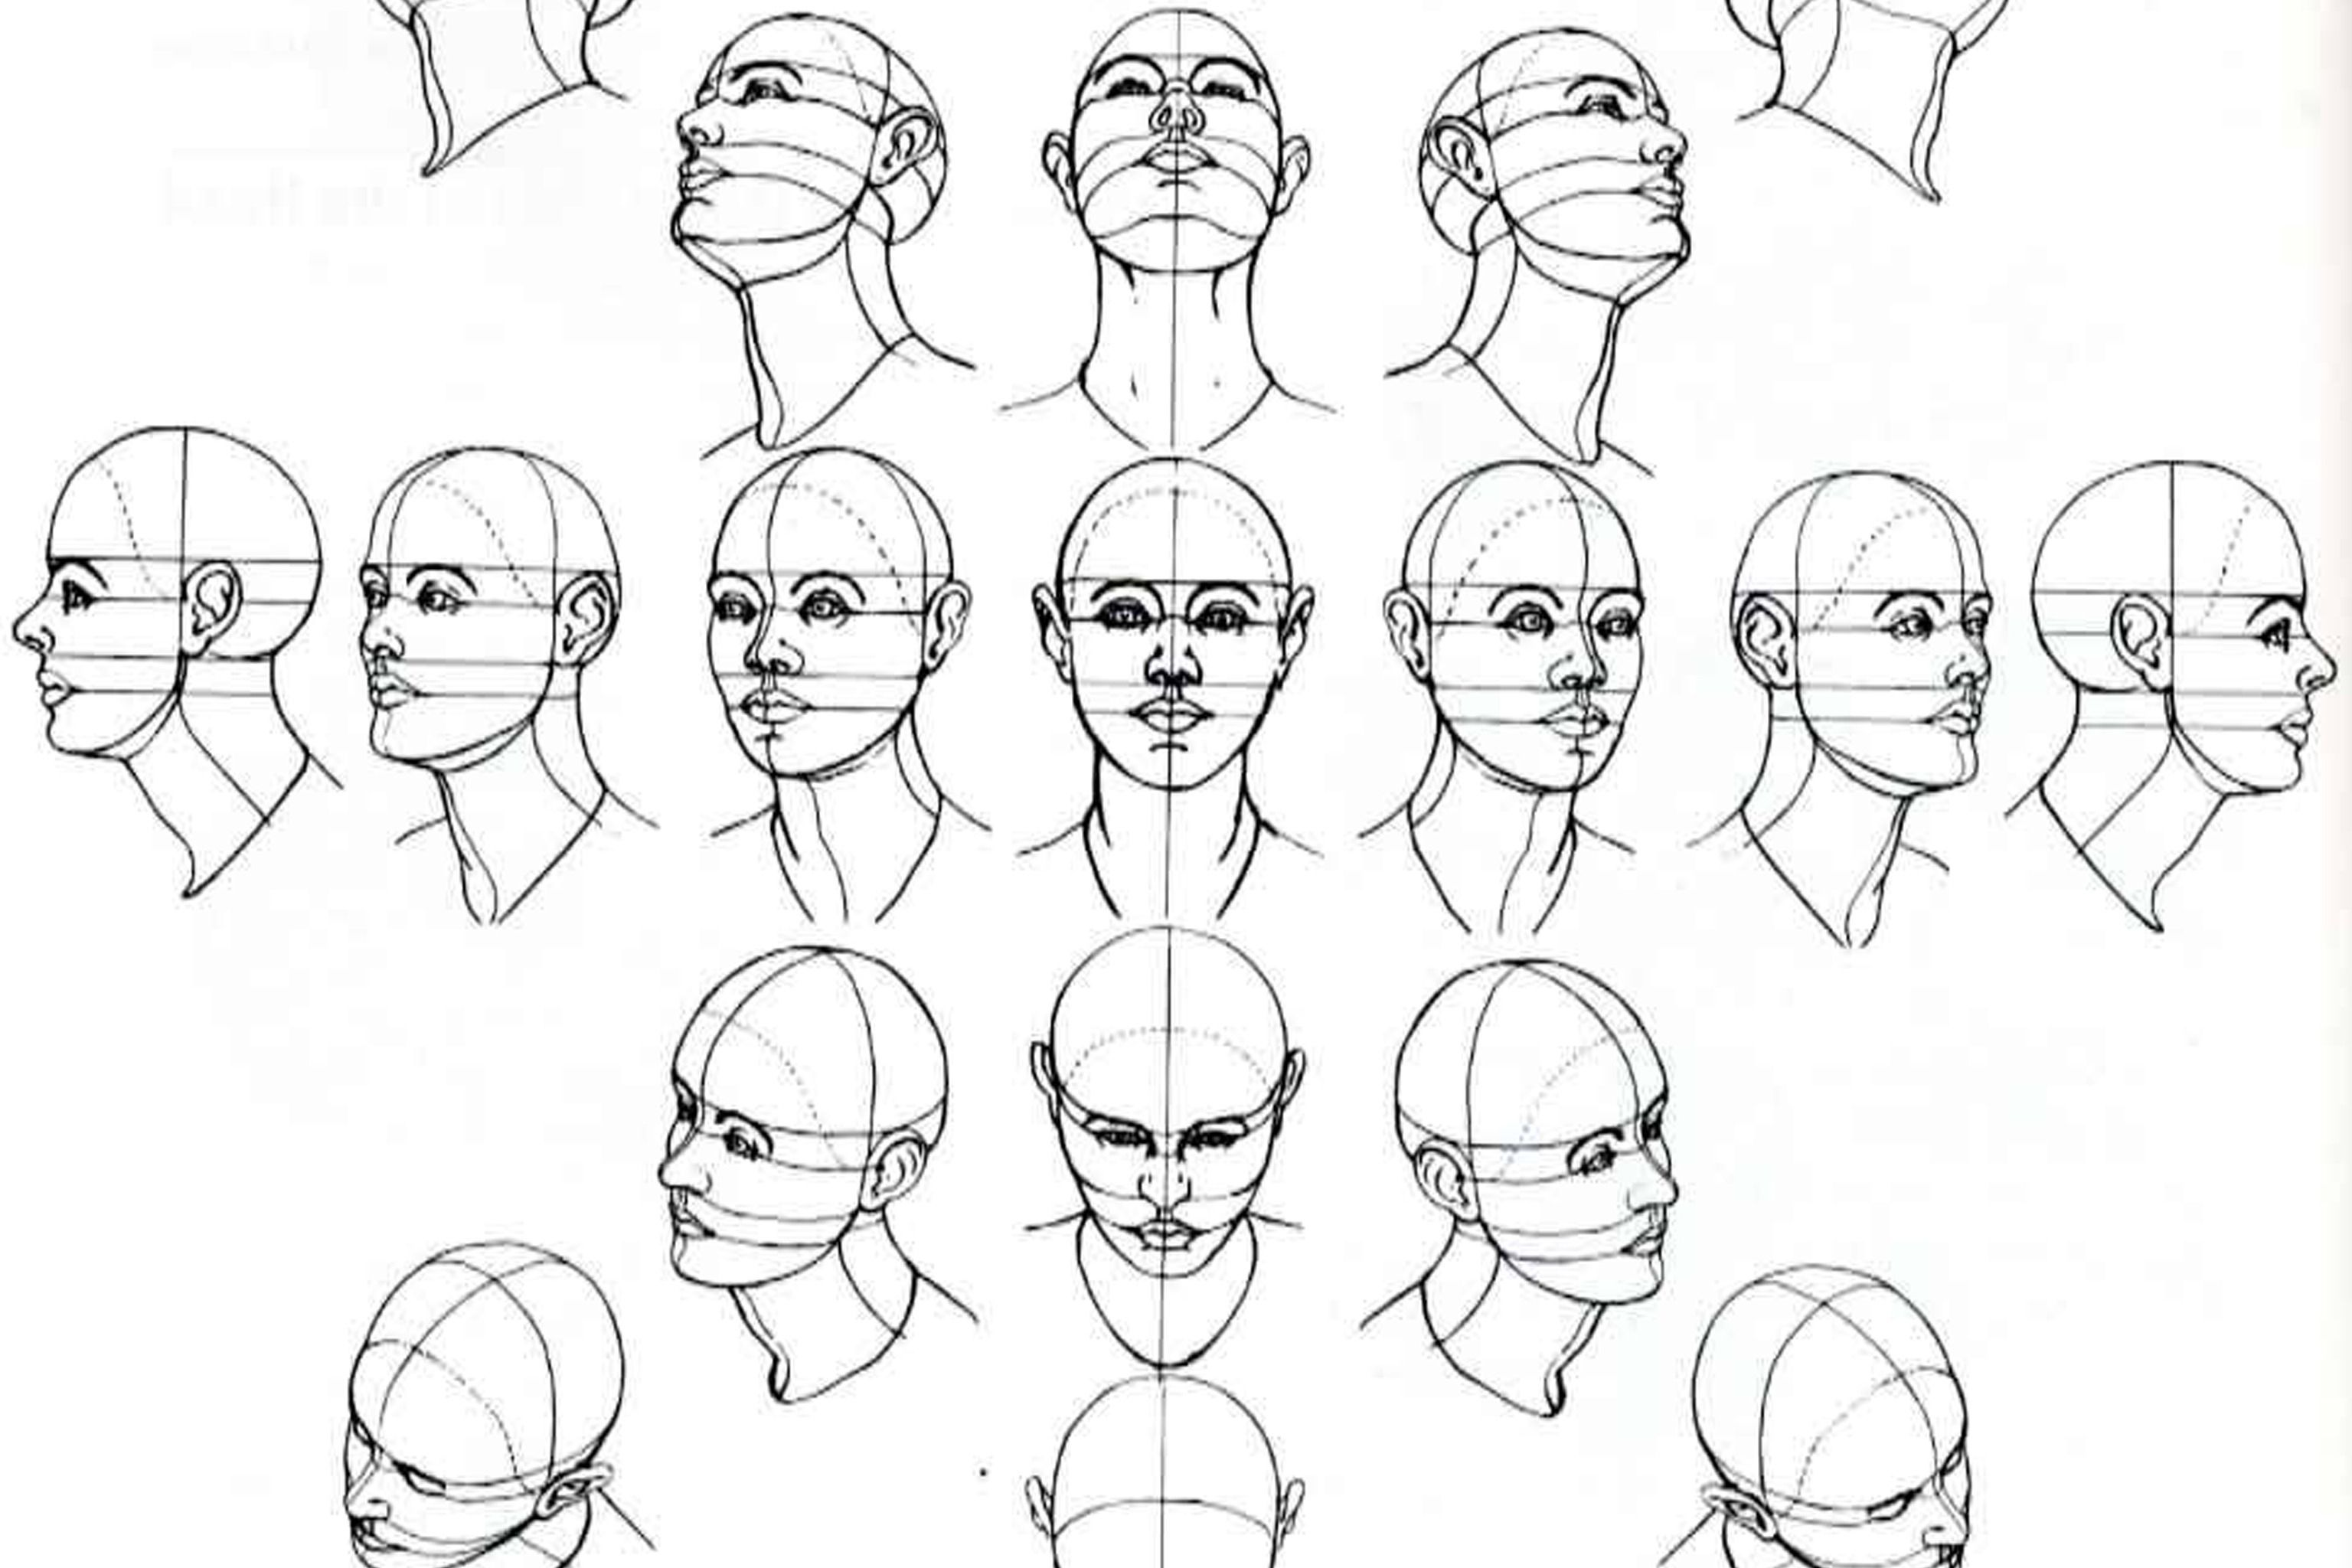 Drawing Face Looking Up Drawing A Face Looking Down How To Draw A Face Looking Up Solution Drawing The Human Head Human Drawing Sketches